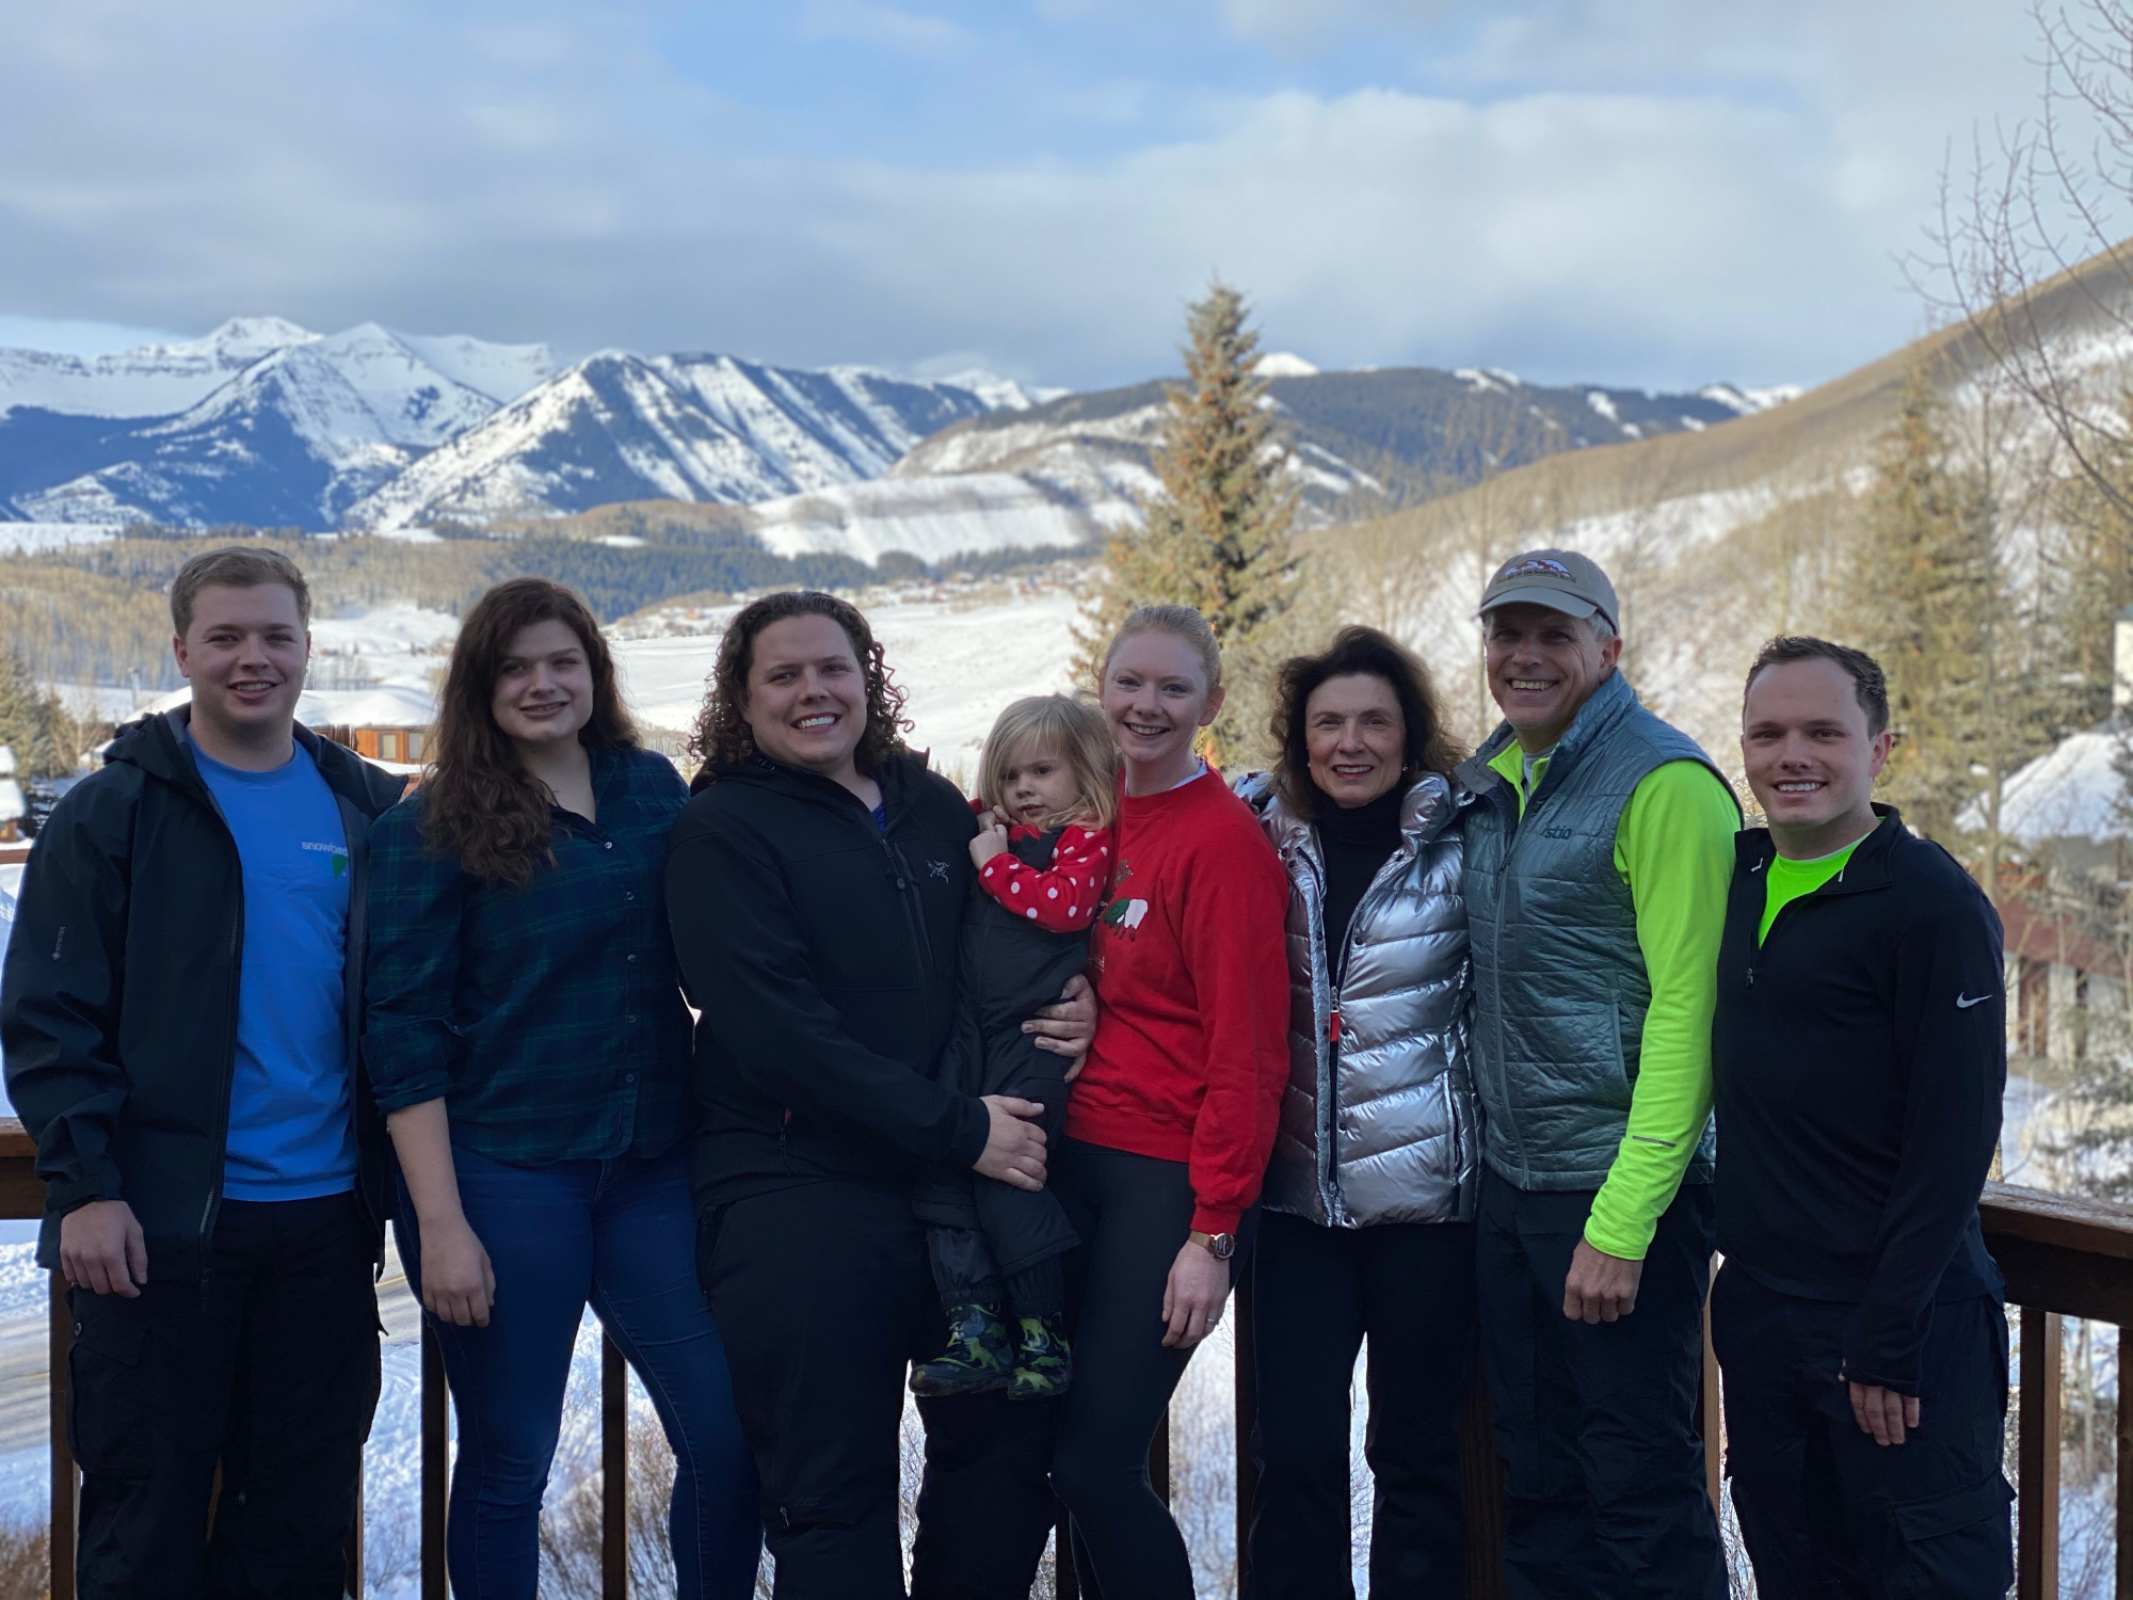 Christmas in Crested Butte (L to R: Kurt, Tori, Austin, Mackenzie, Shannon and Travis)